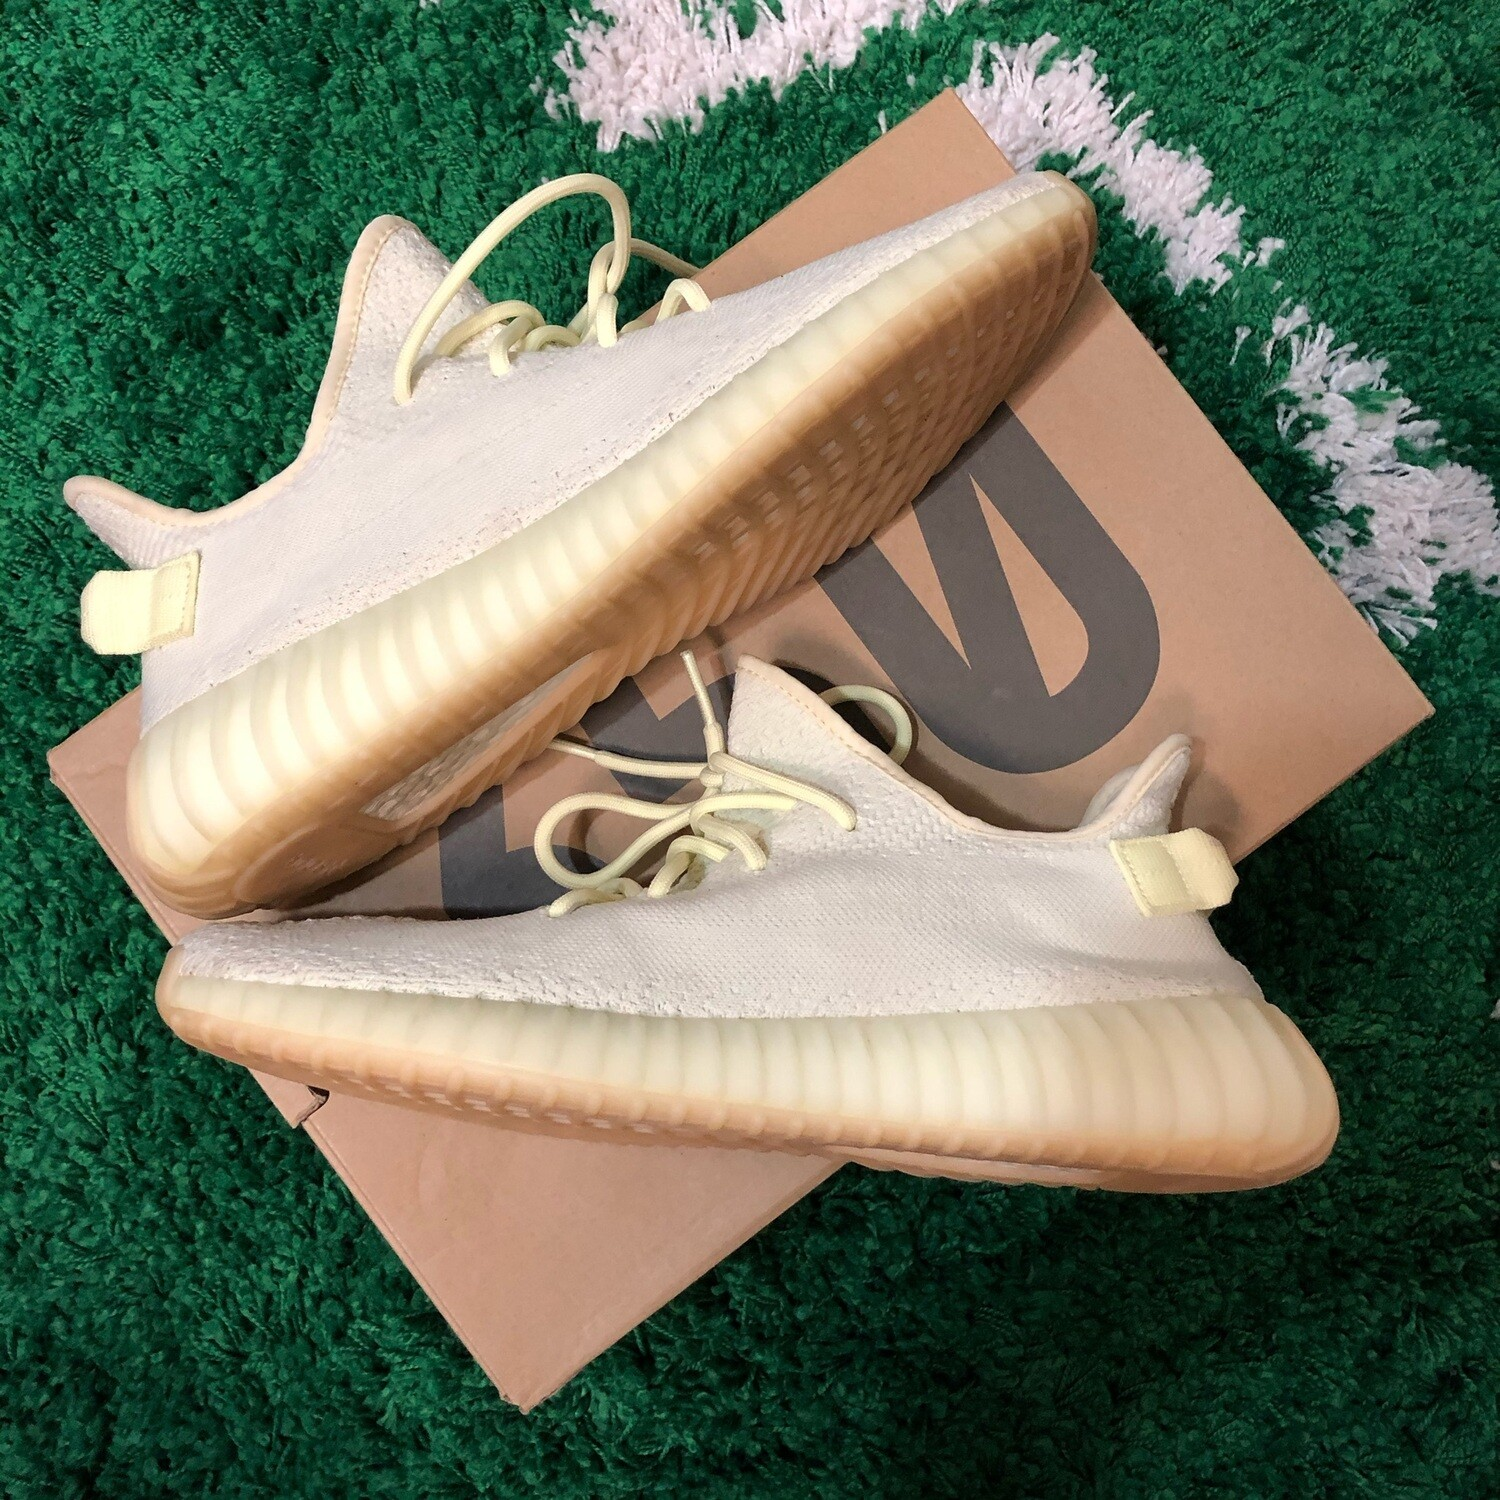 Adidas Yeezy Boost 350 v2 Butter Size 12.5